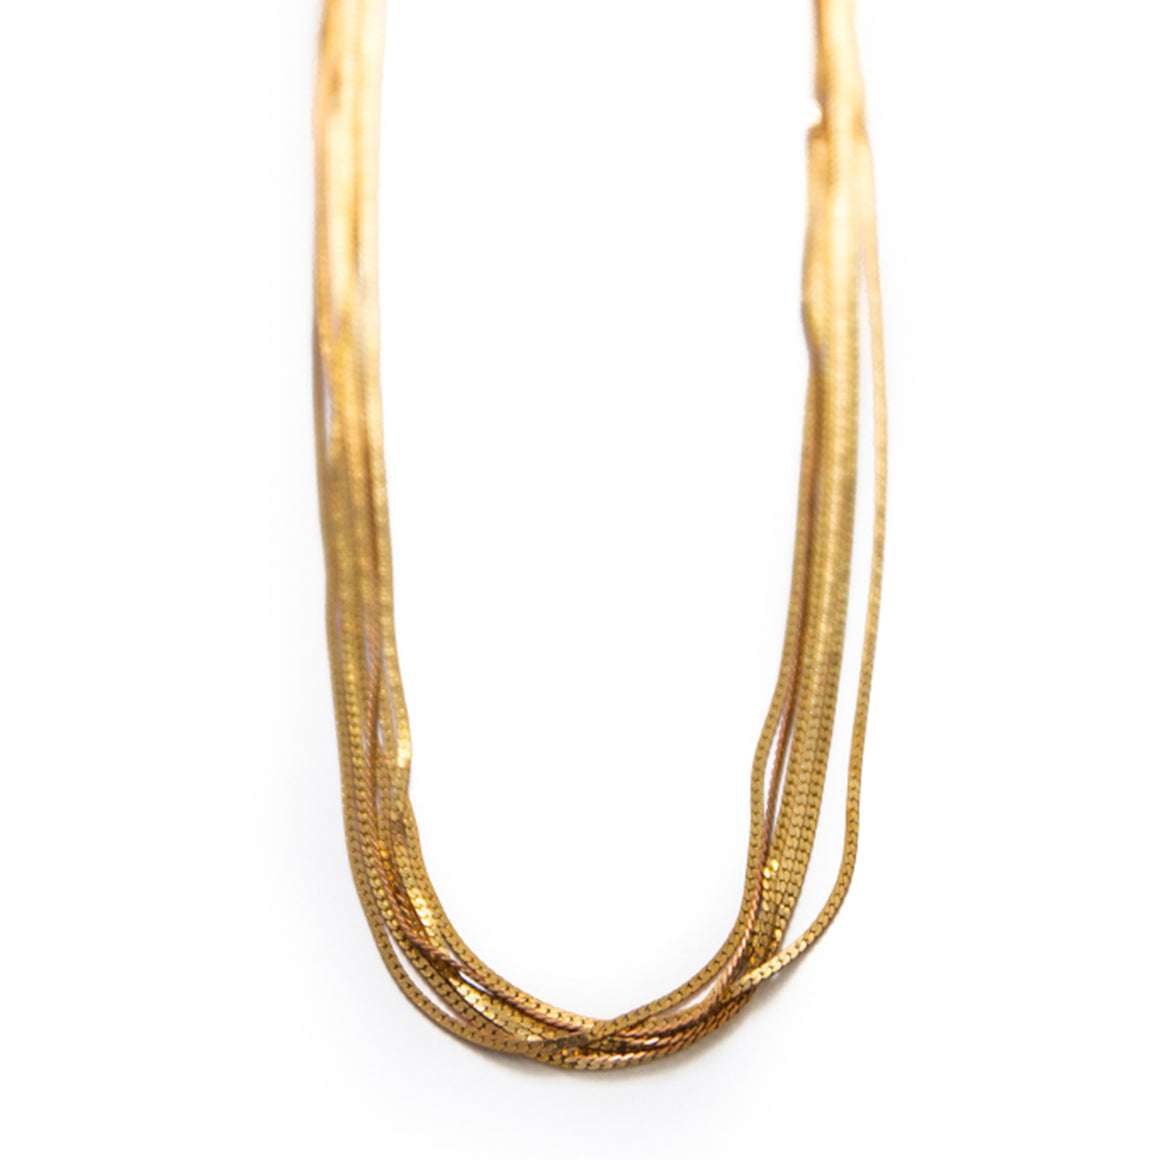 Golden Fox Tail Necklace - Isobell Designs